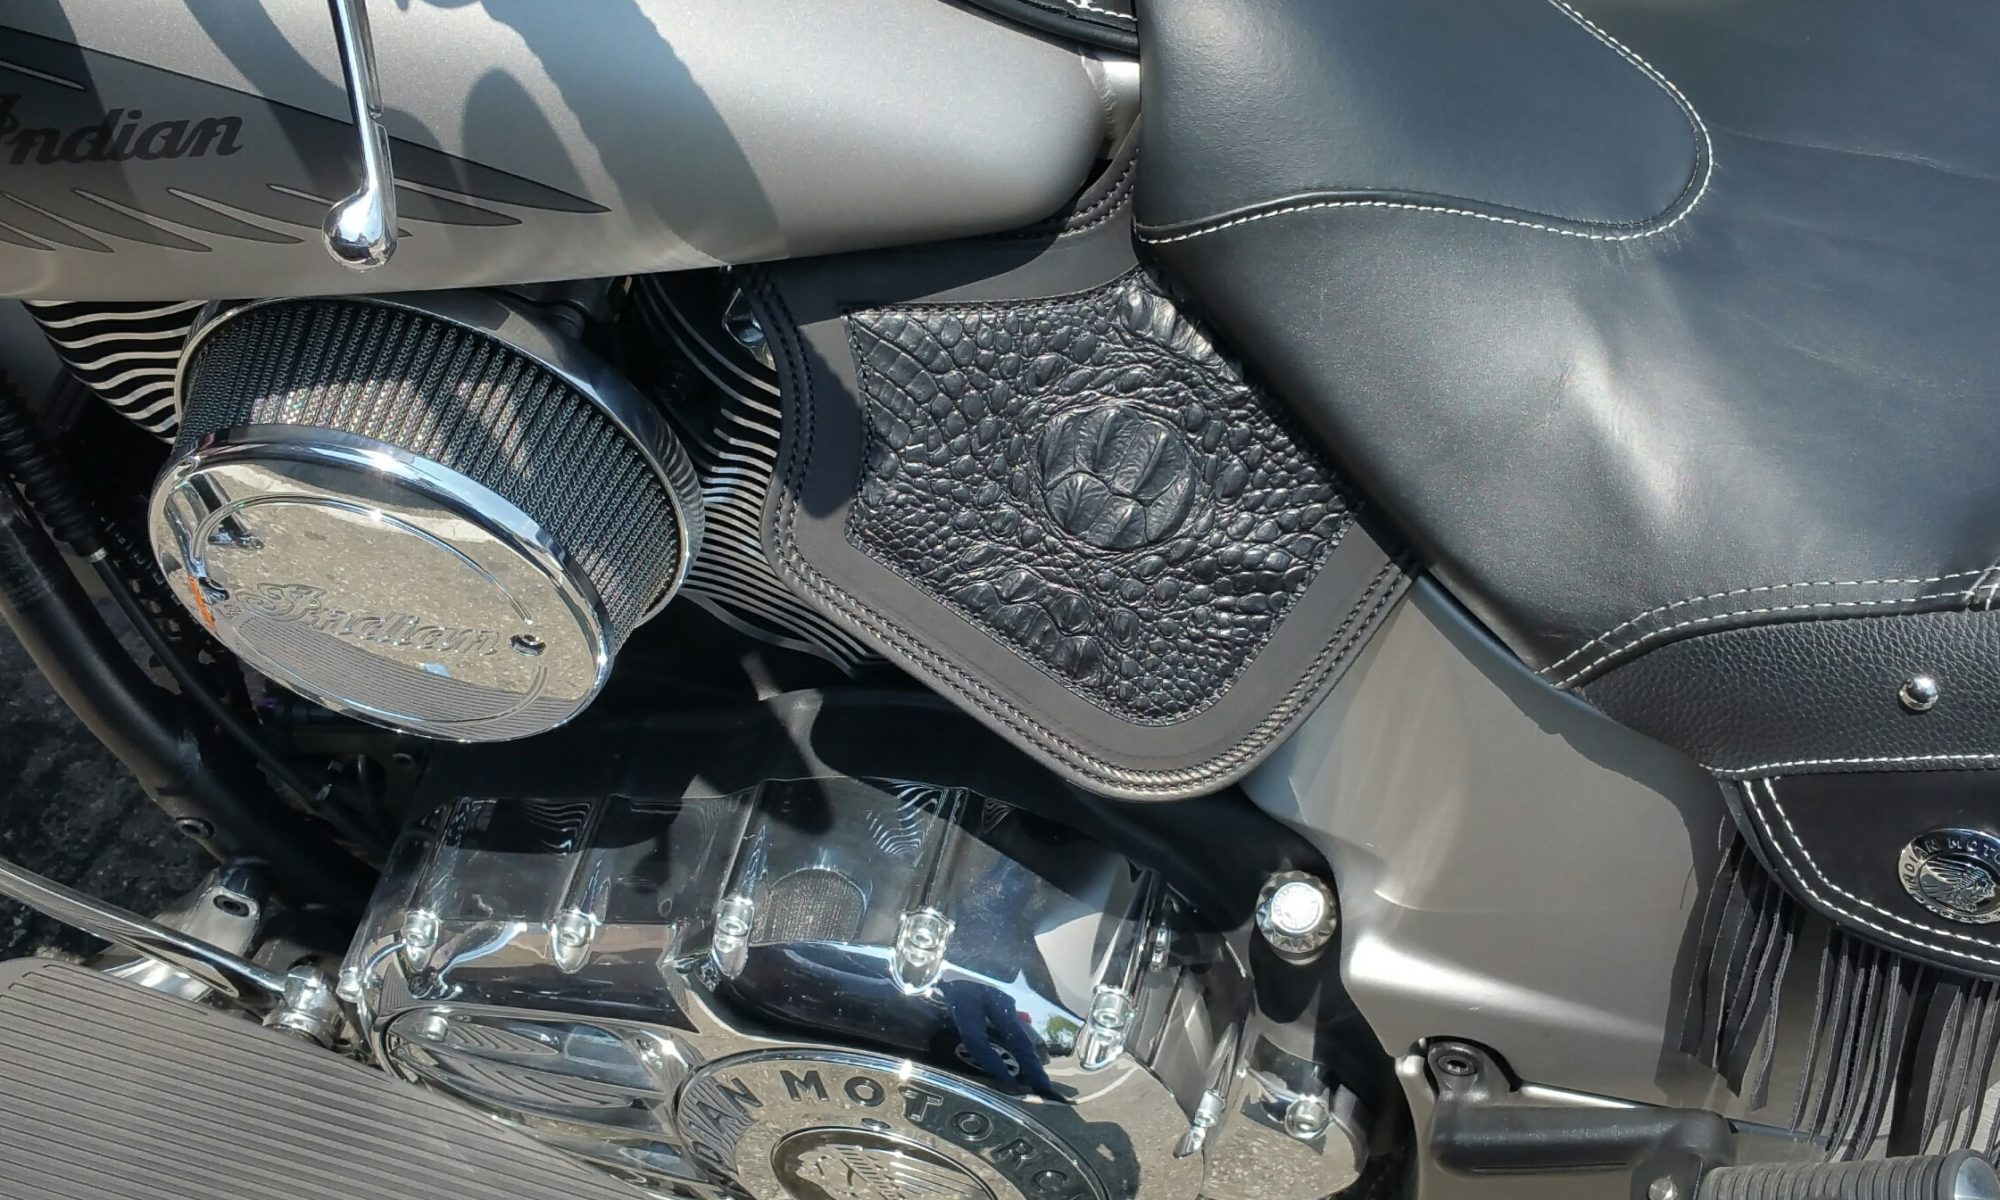 Indian heat shield with black alligator embossed leather